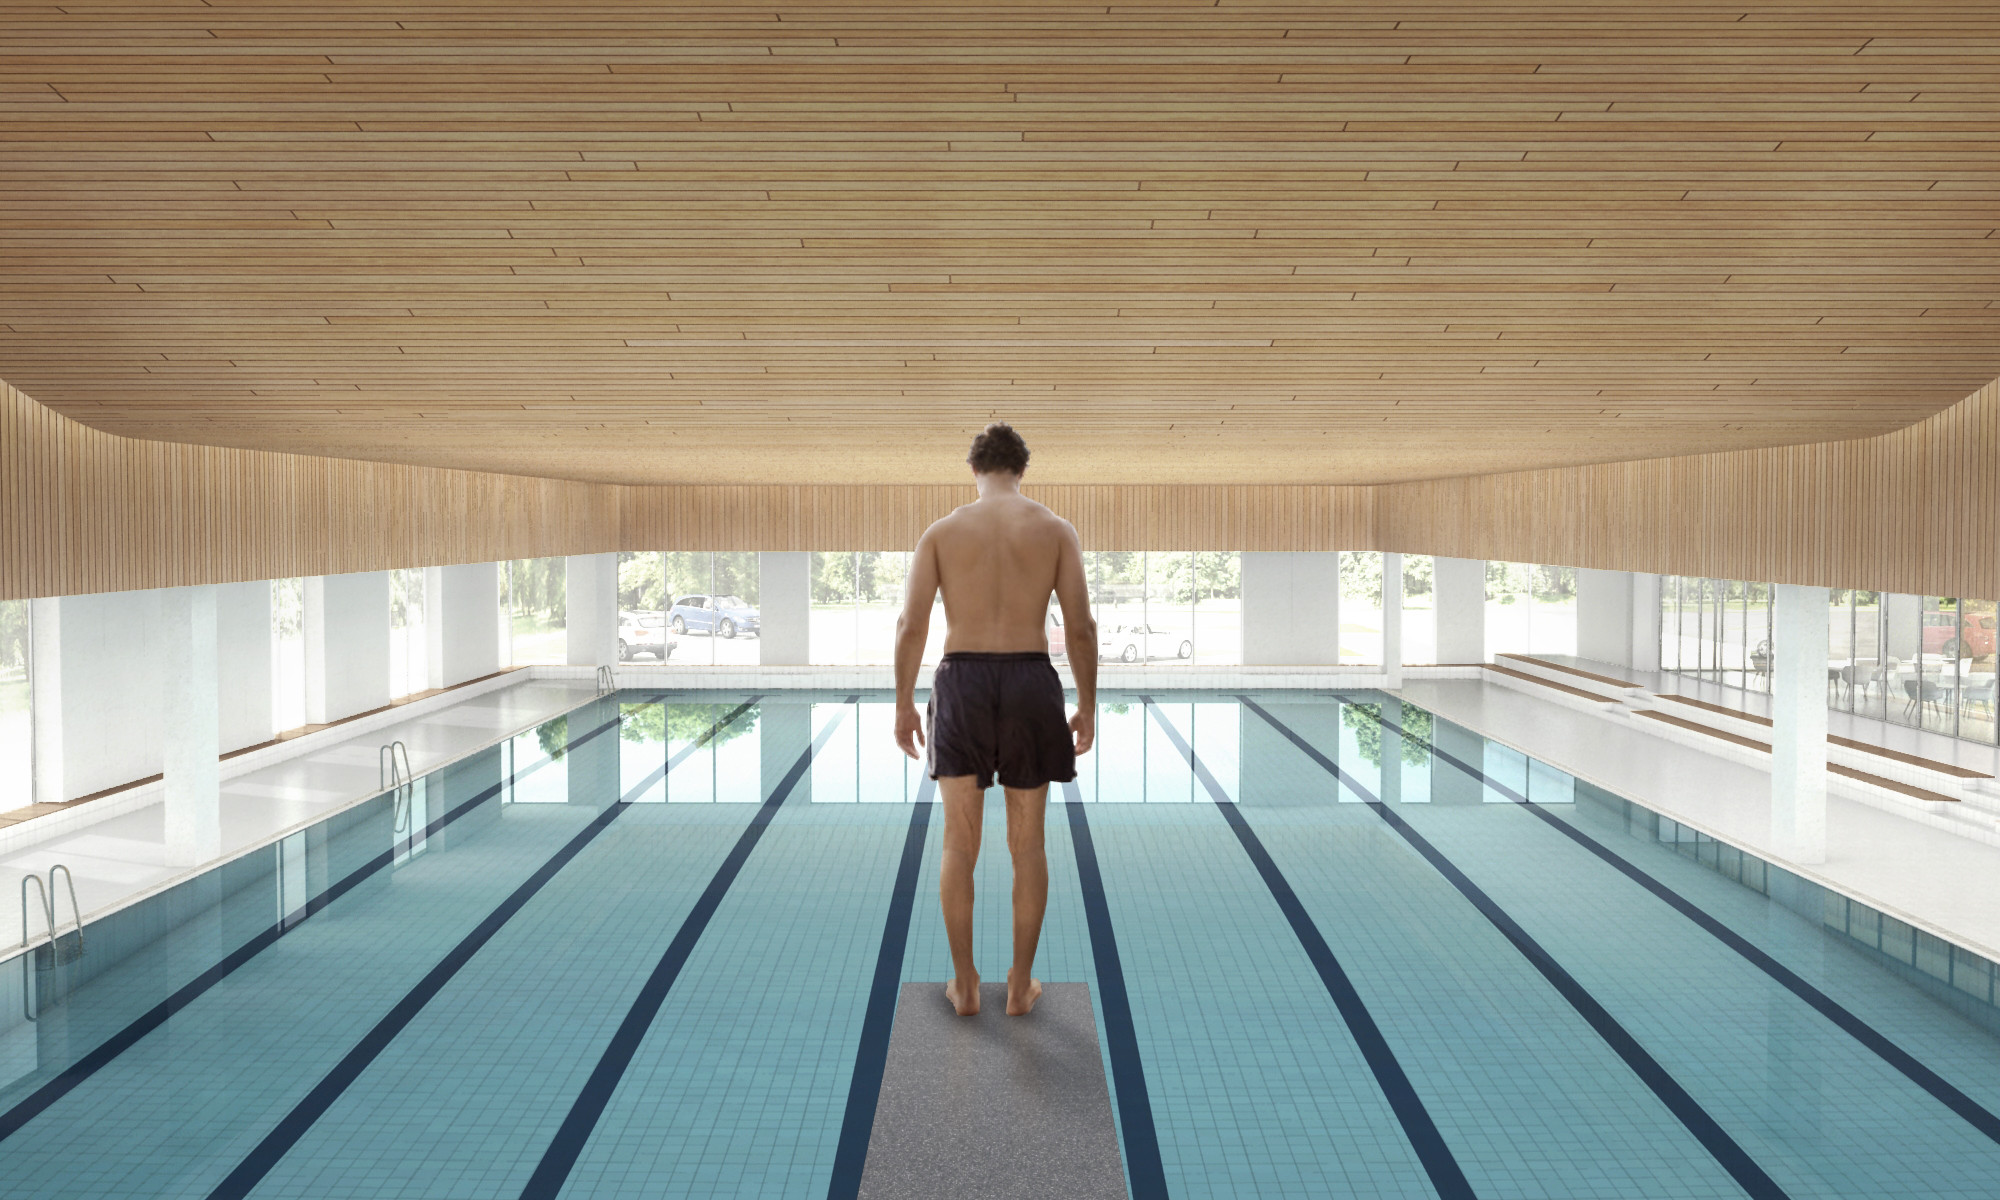 Gallery Of Creo Arkitekter And Jaja Architects To Restore And Expand Roskilde Swimming Hall